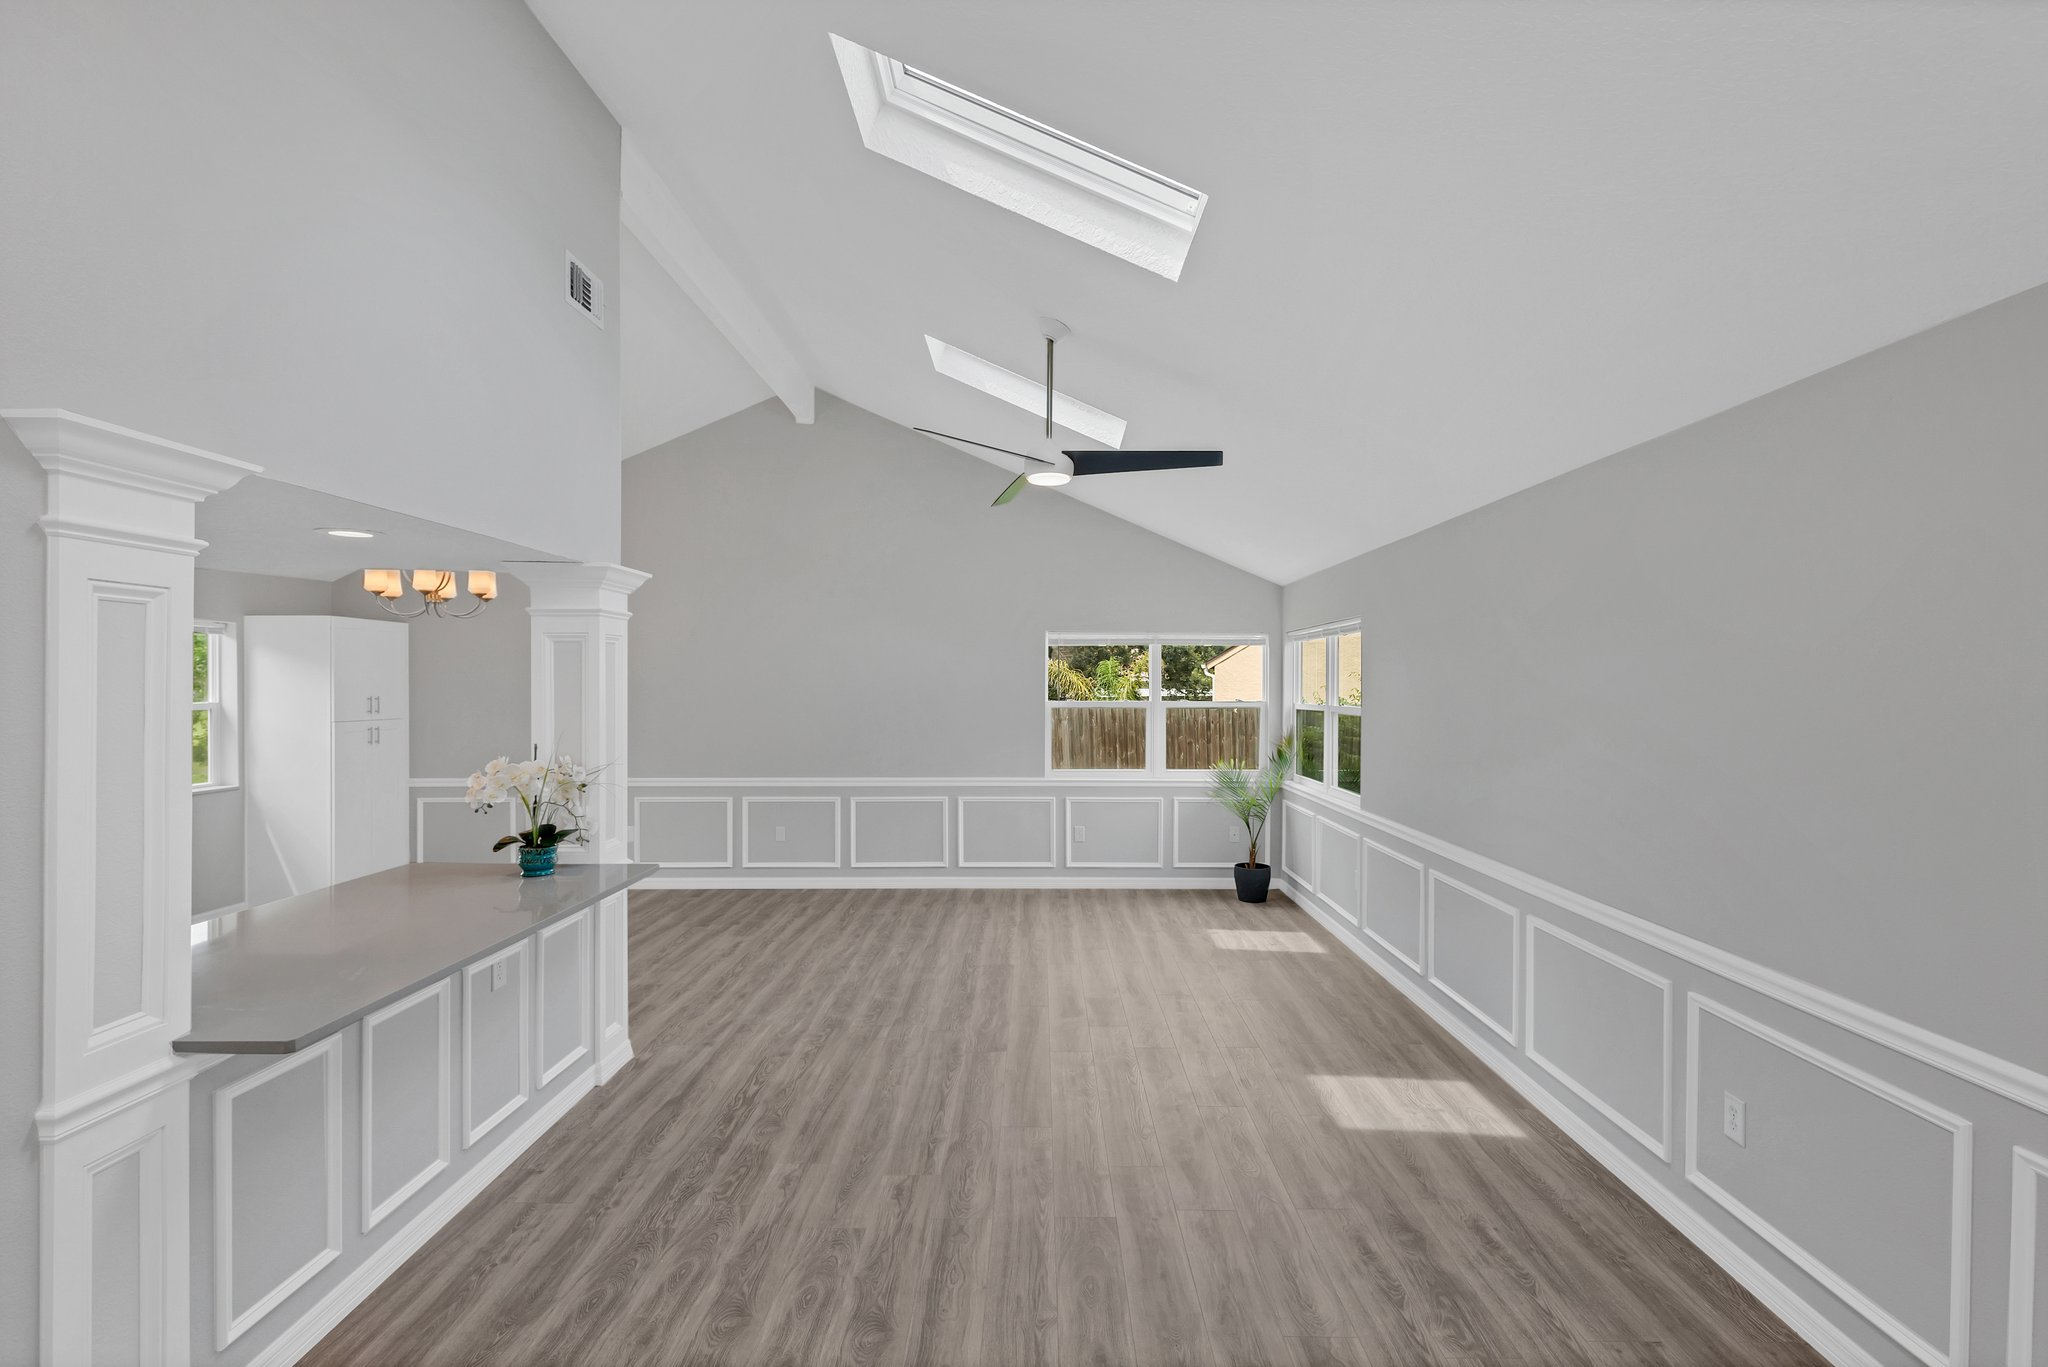 SKYLIGHTS cast a picture-perfect natural light.